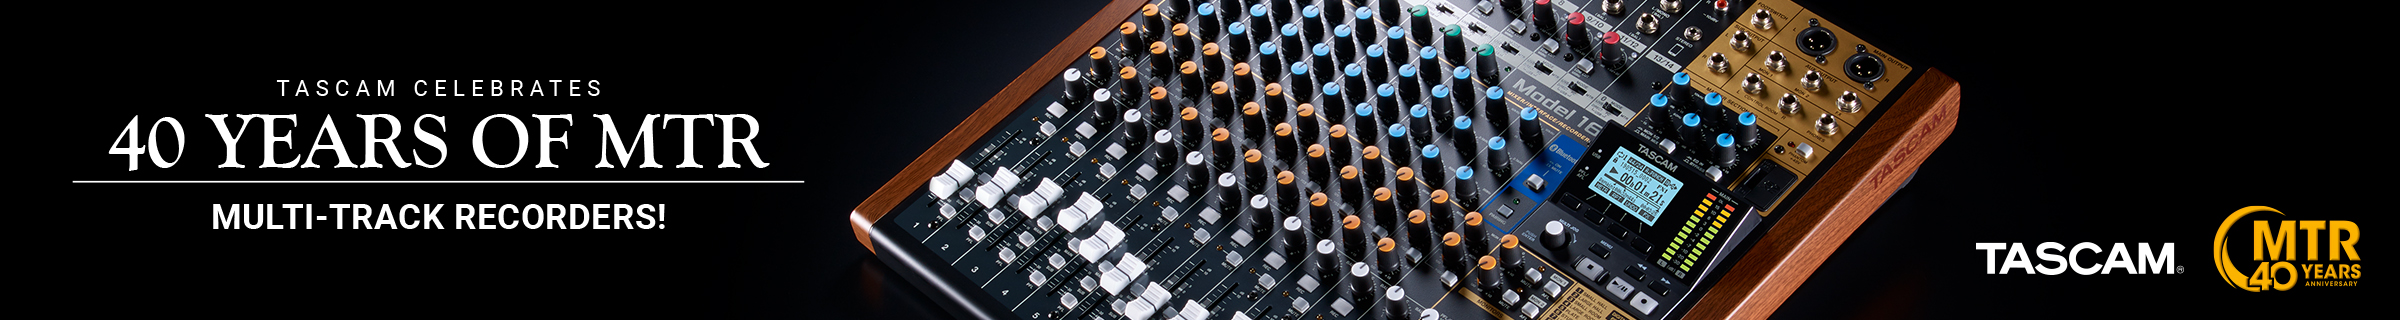 Ten of the Most Popular EQ Plug-Ins